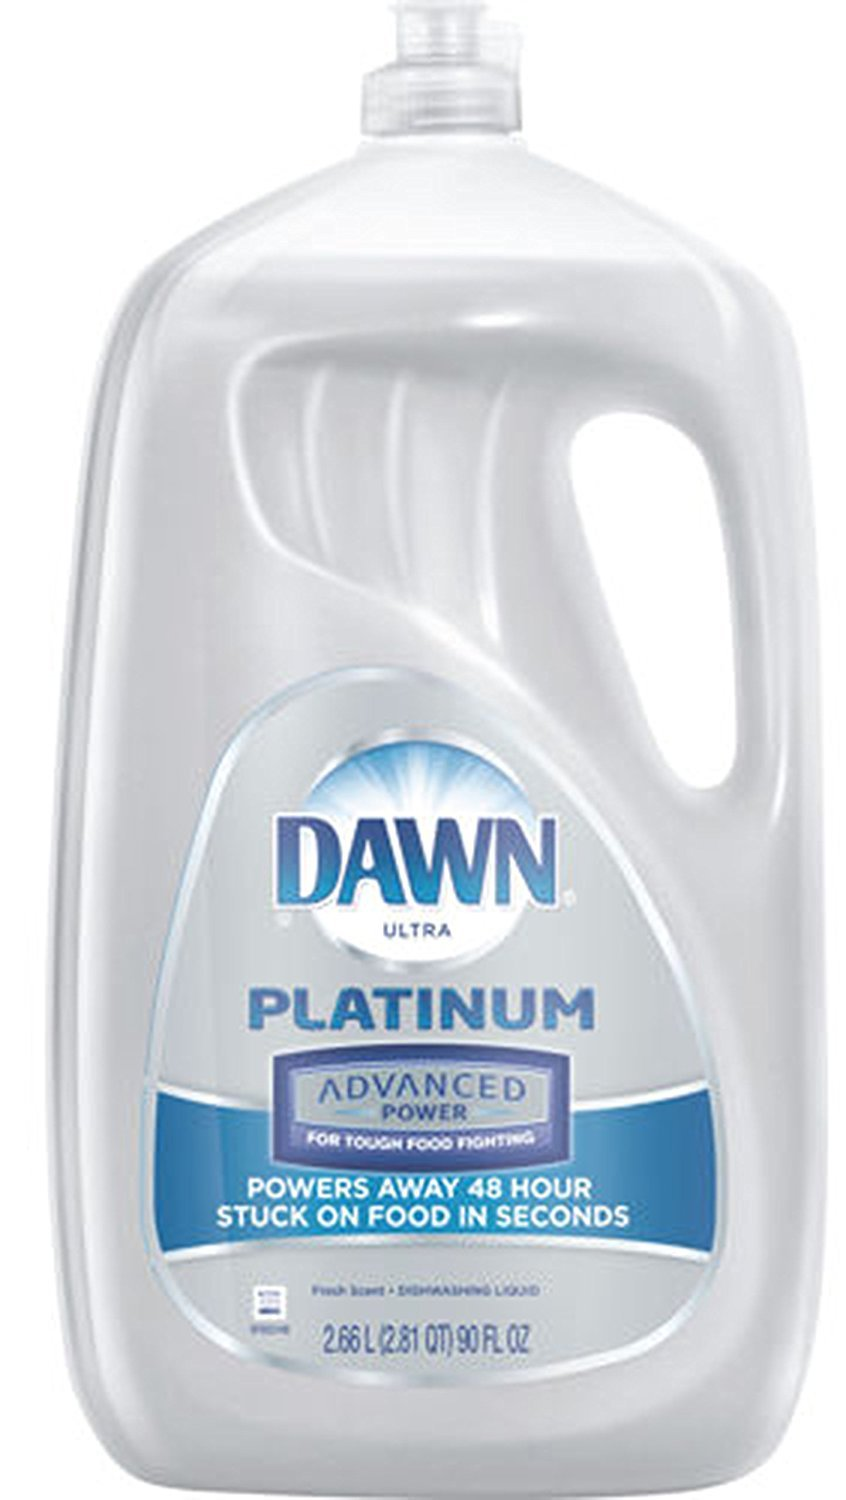 Dawn Ultra Platinum Advanced Power Dishwashing Liquid, Fresh Scent, 90 Ounce